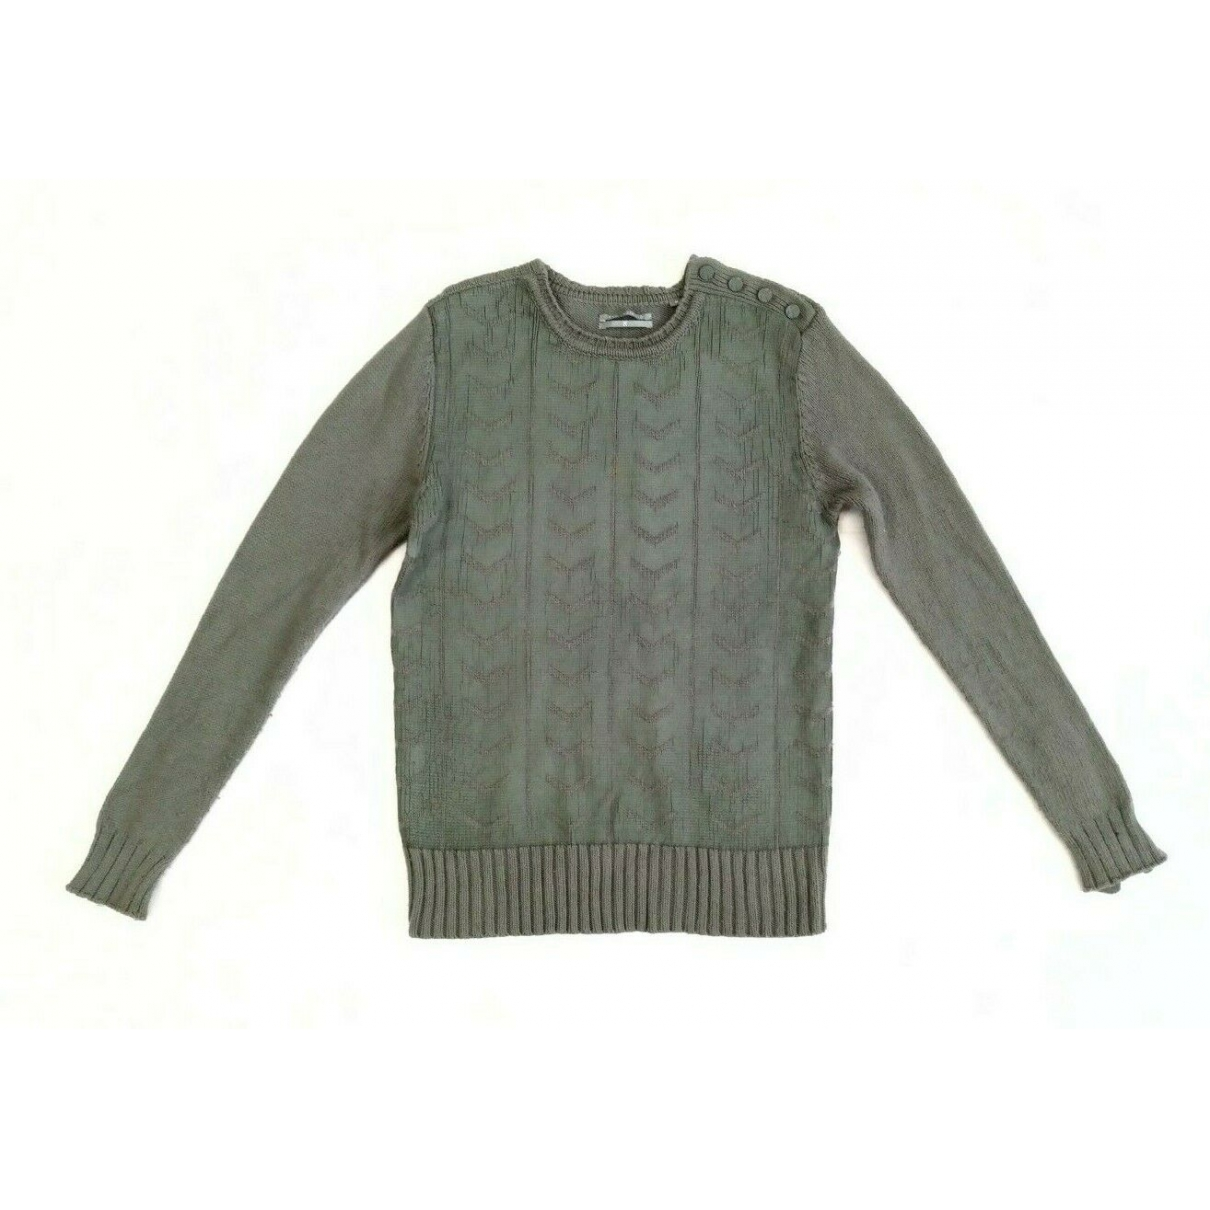 Karl Lagerfeld \N Khaki Cotton Knitwear & Sweatshirts for Men M International